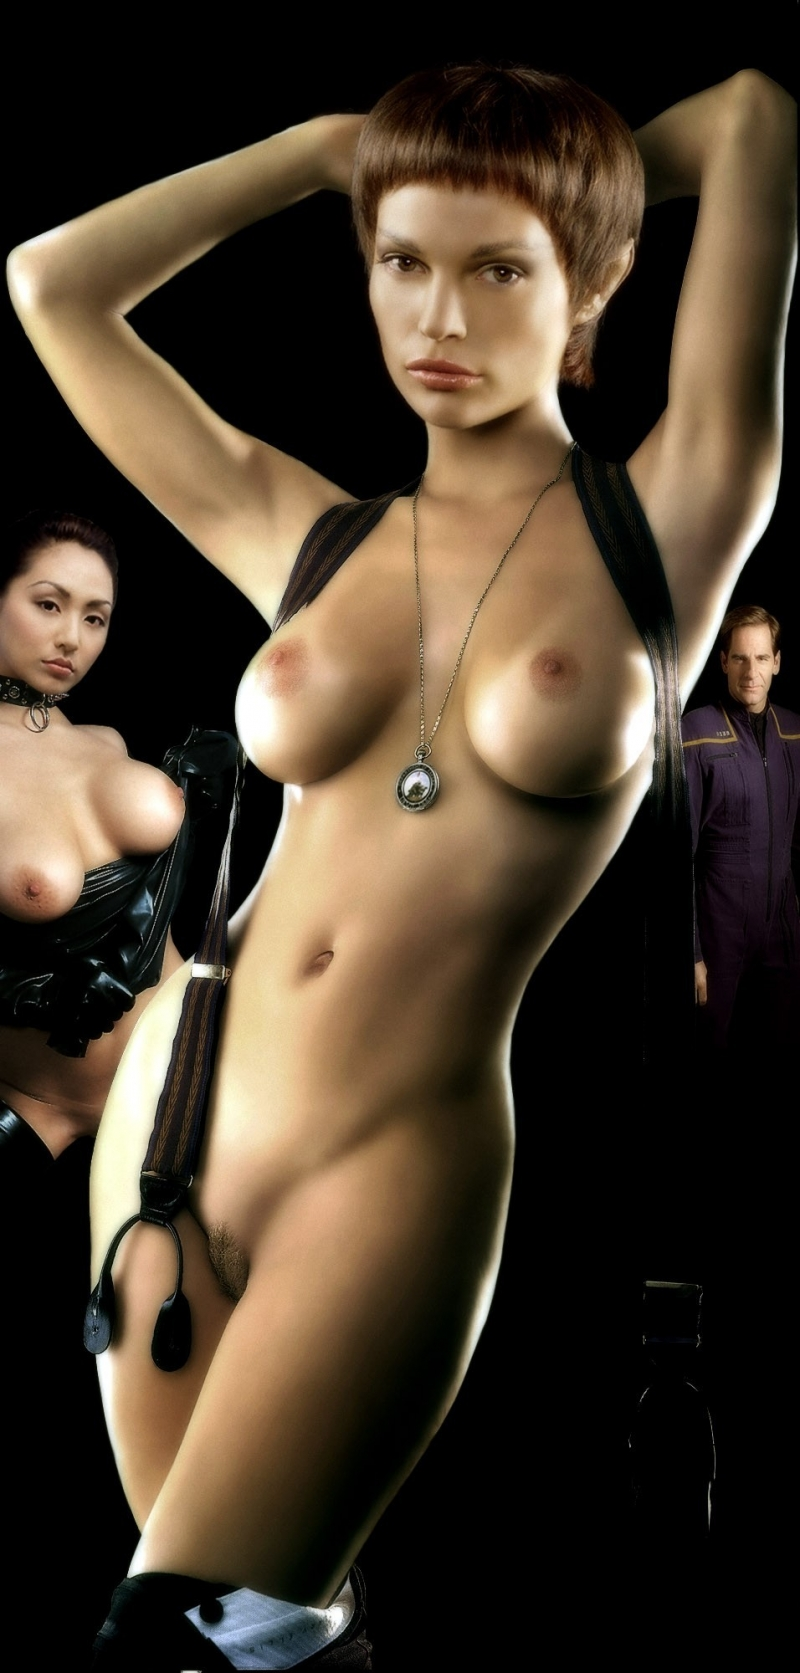 T'pol looks awesome when nude!